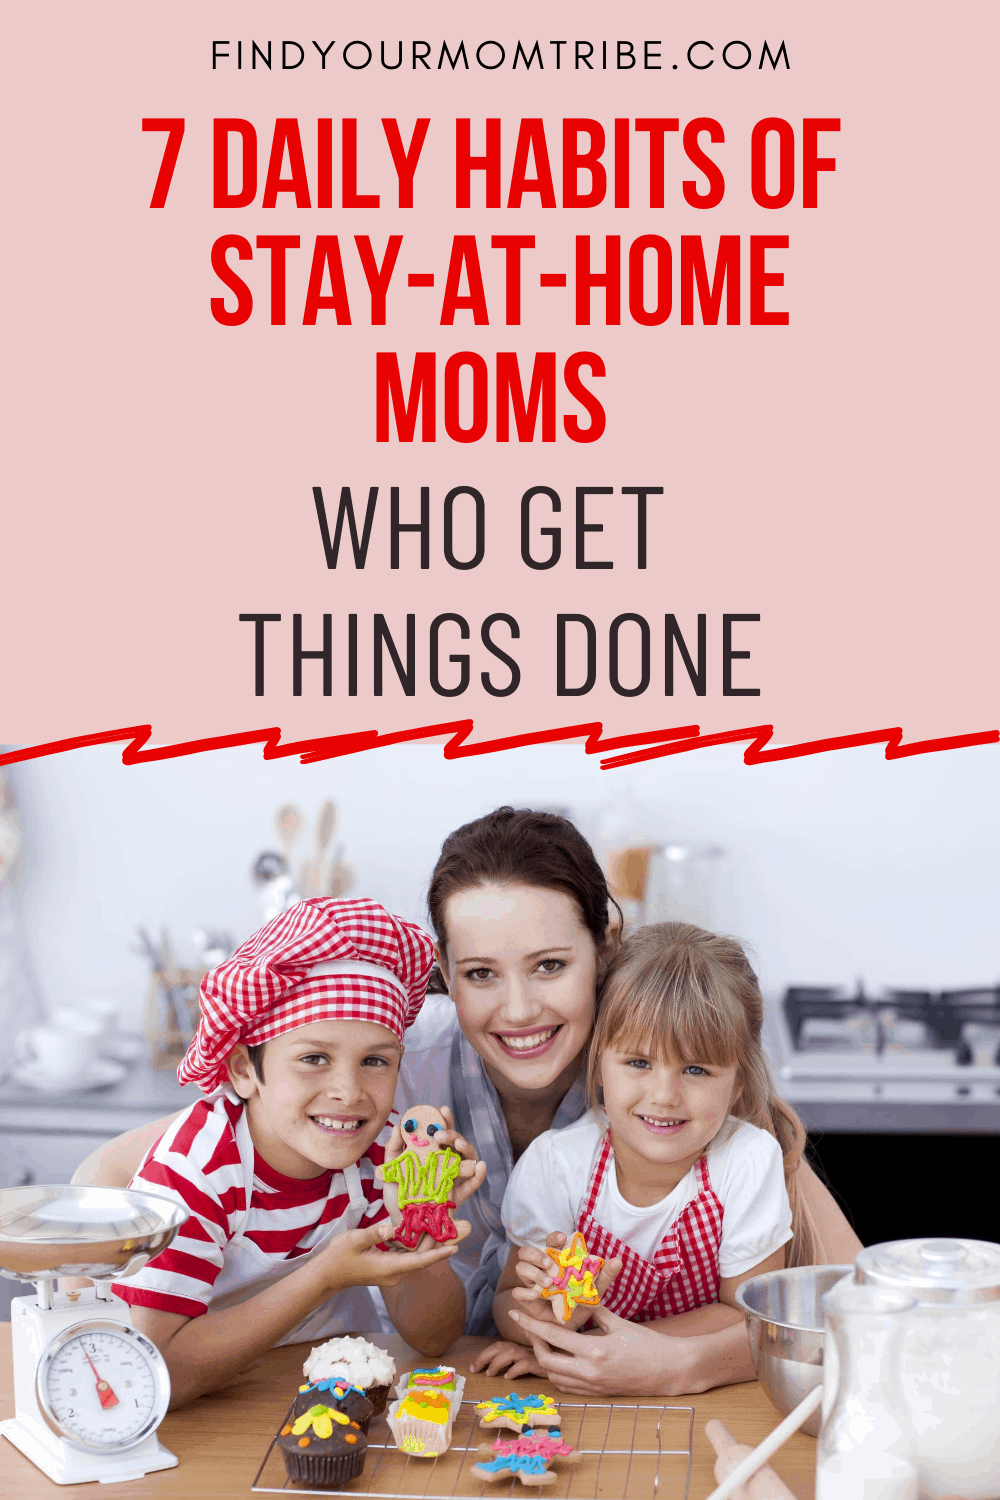 Pinterest 7 Daily Habits of Stay-at-Home Moms Who Get Things Done